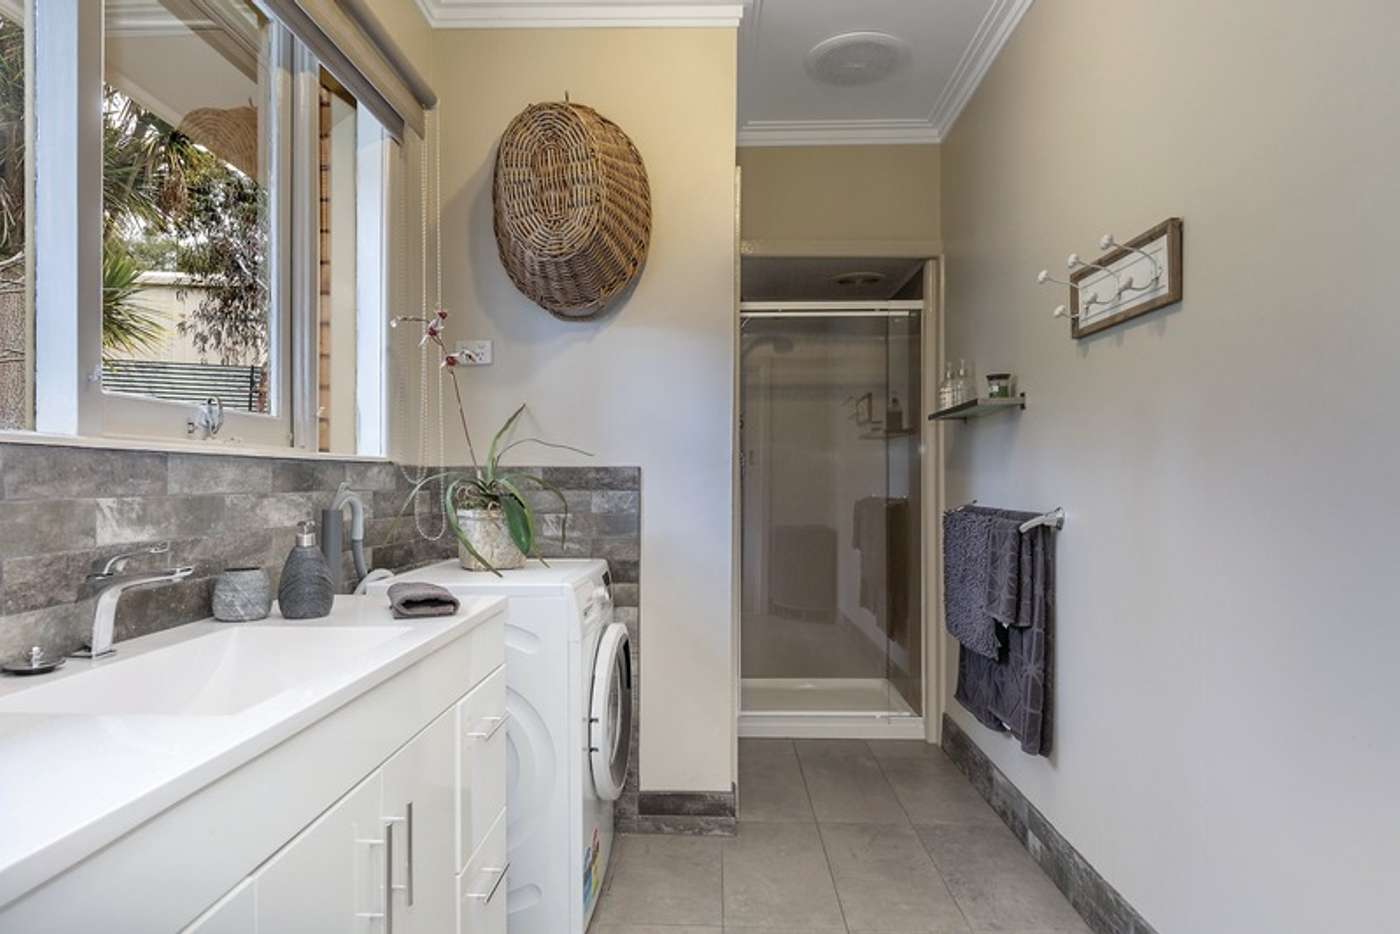 Sixth view of Homely house listing, 110 Hickman Street, Ballarat Central VIC 3350